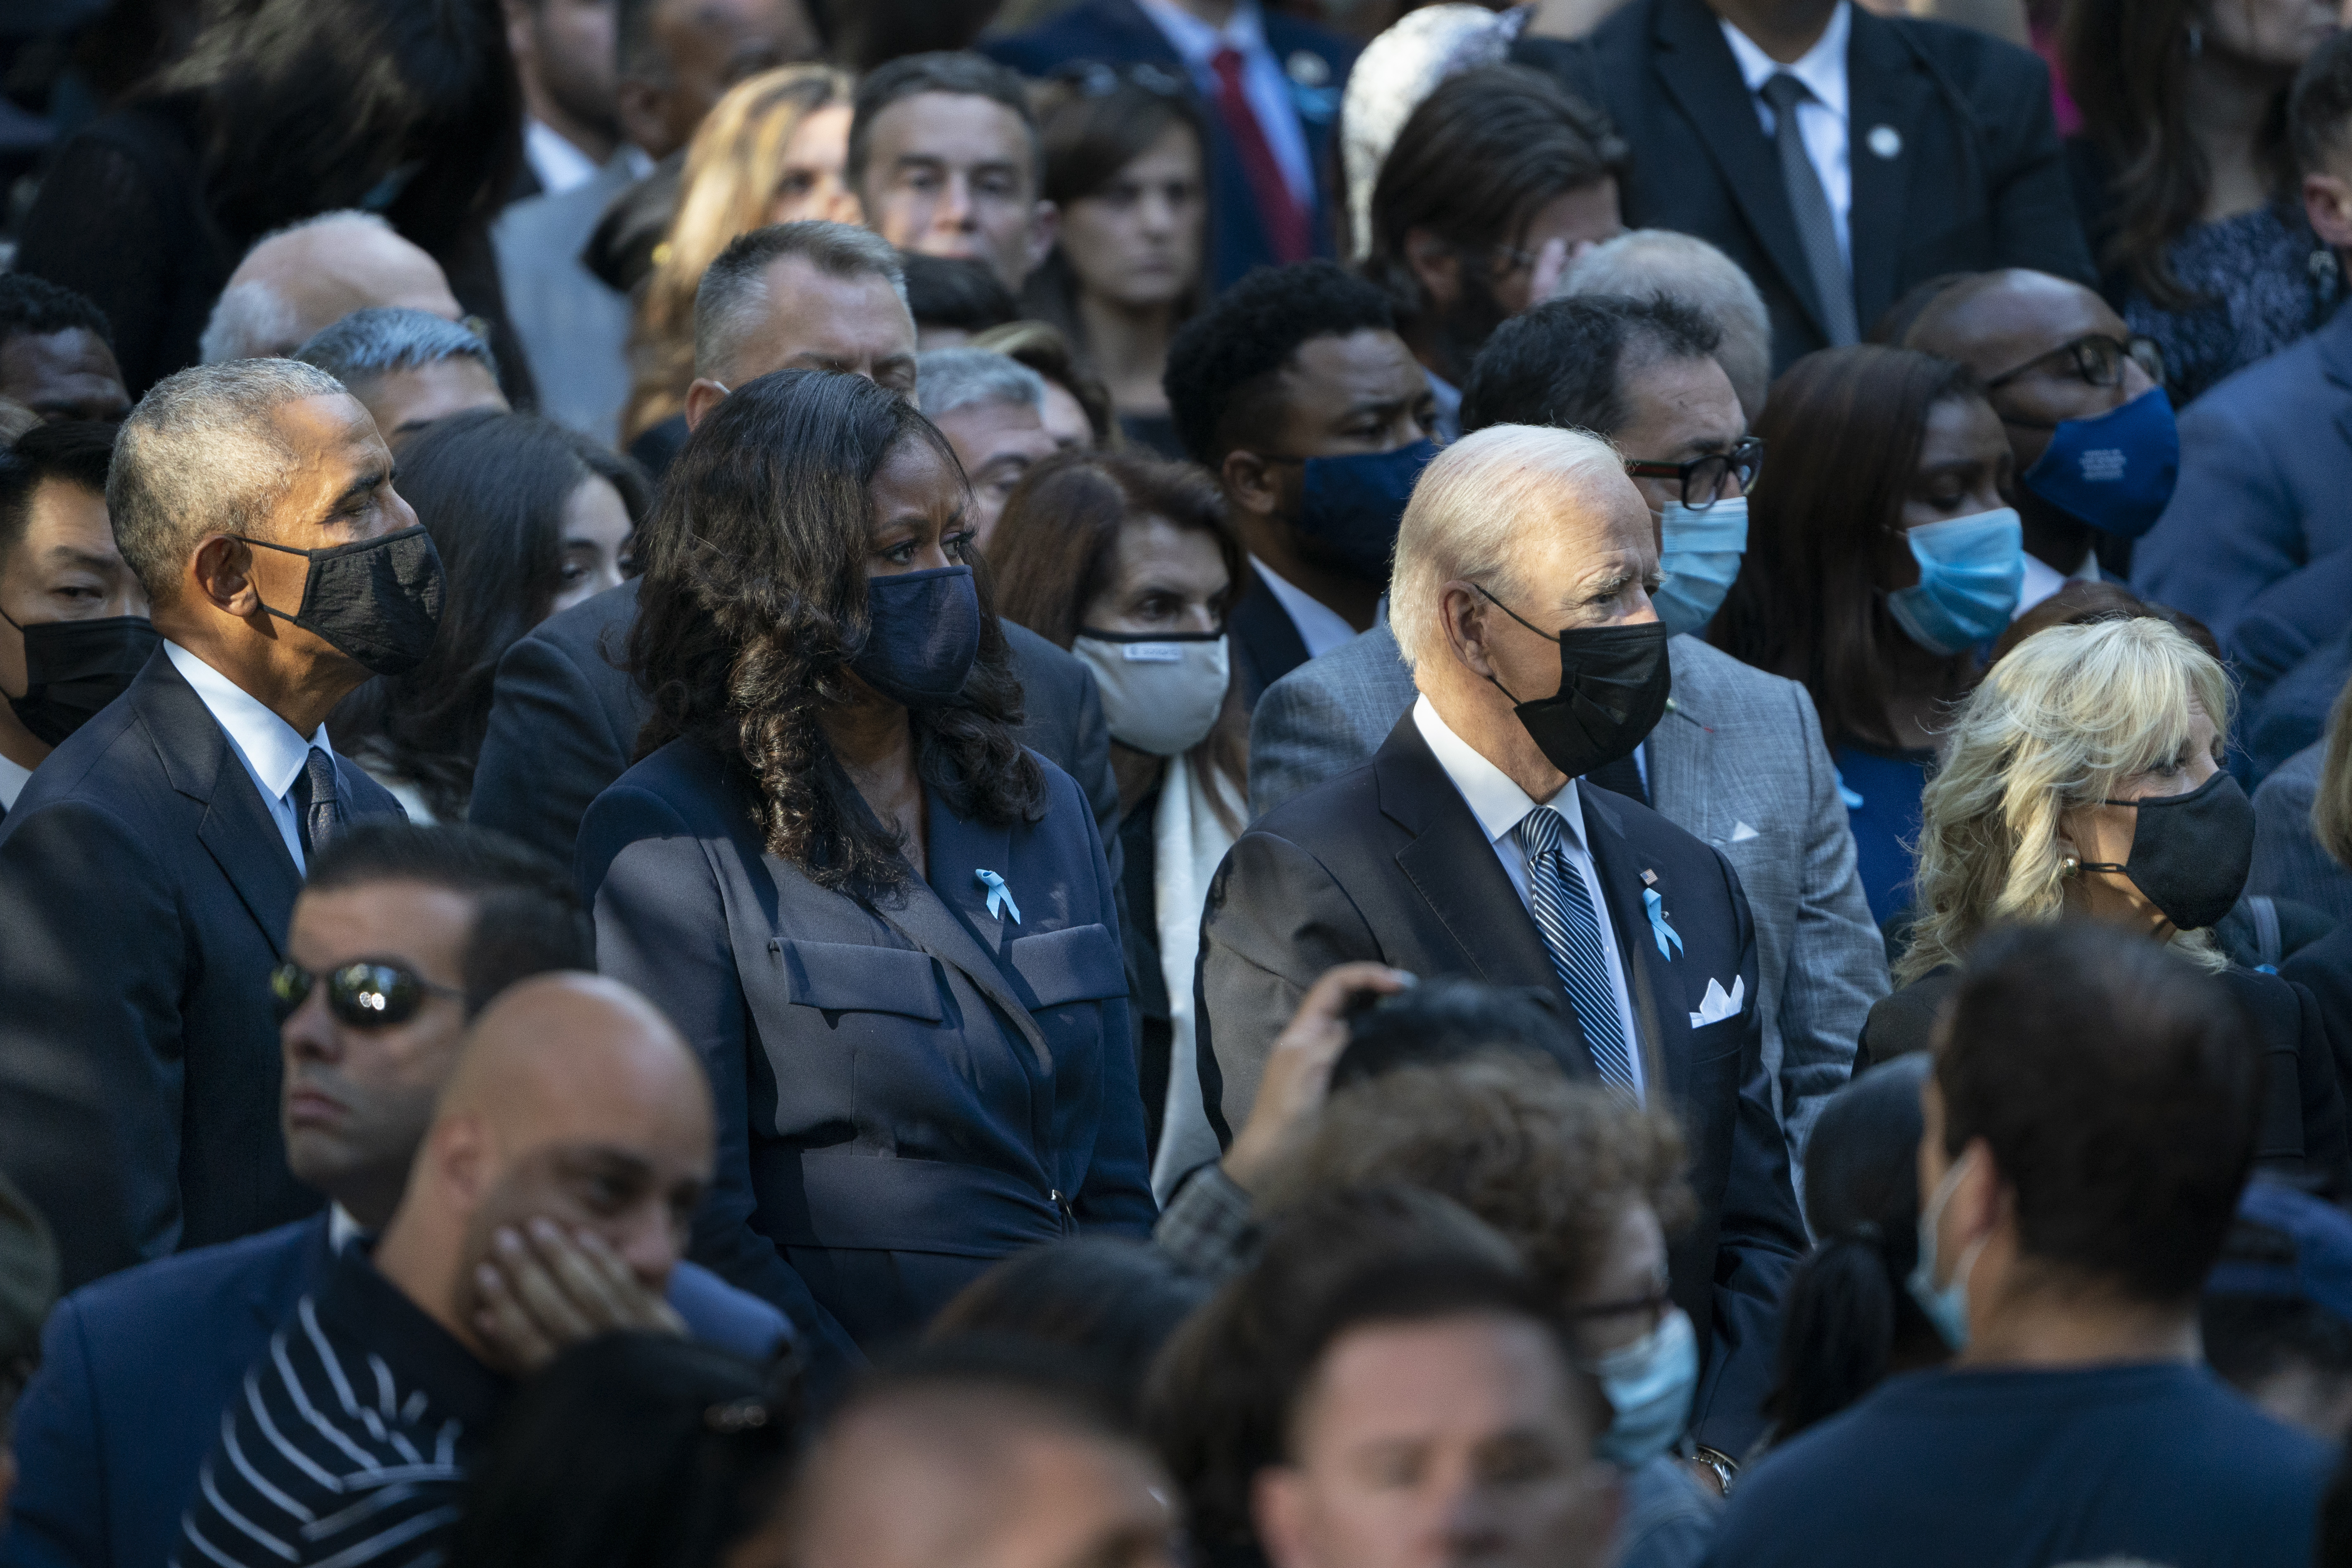 Former President Barack Obama, former First Lady Michelle Obama, President Joe Biden, and First Lady Dr. Jill Biden, attend ceremonies to commemorate the 20th anniversary of the Sept. 11 terrorist attacks, on Sept. 11, 2021, at the National September 11 Memorial Museum in New York.